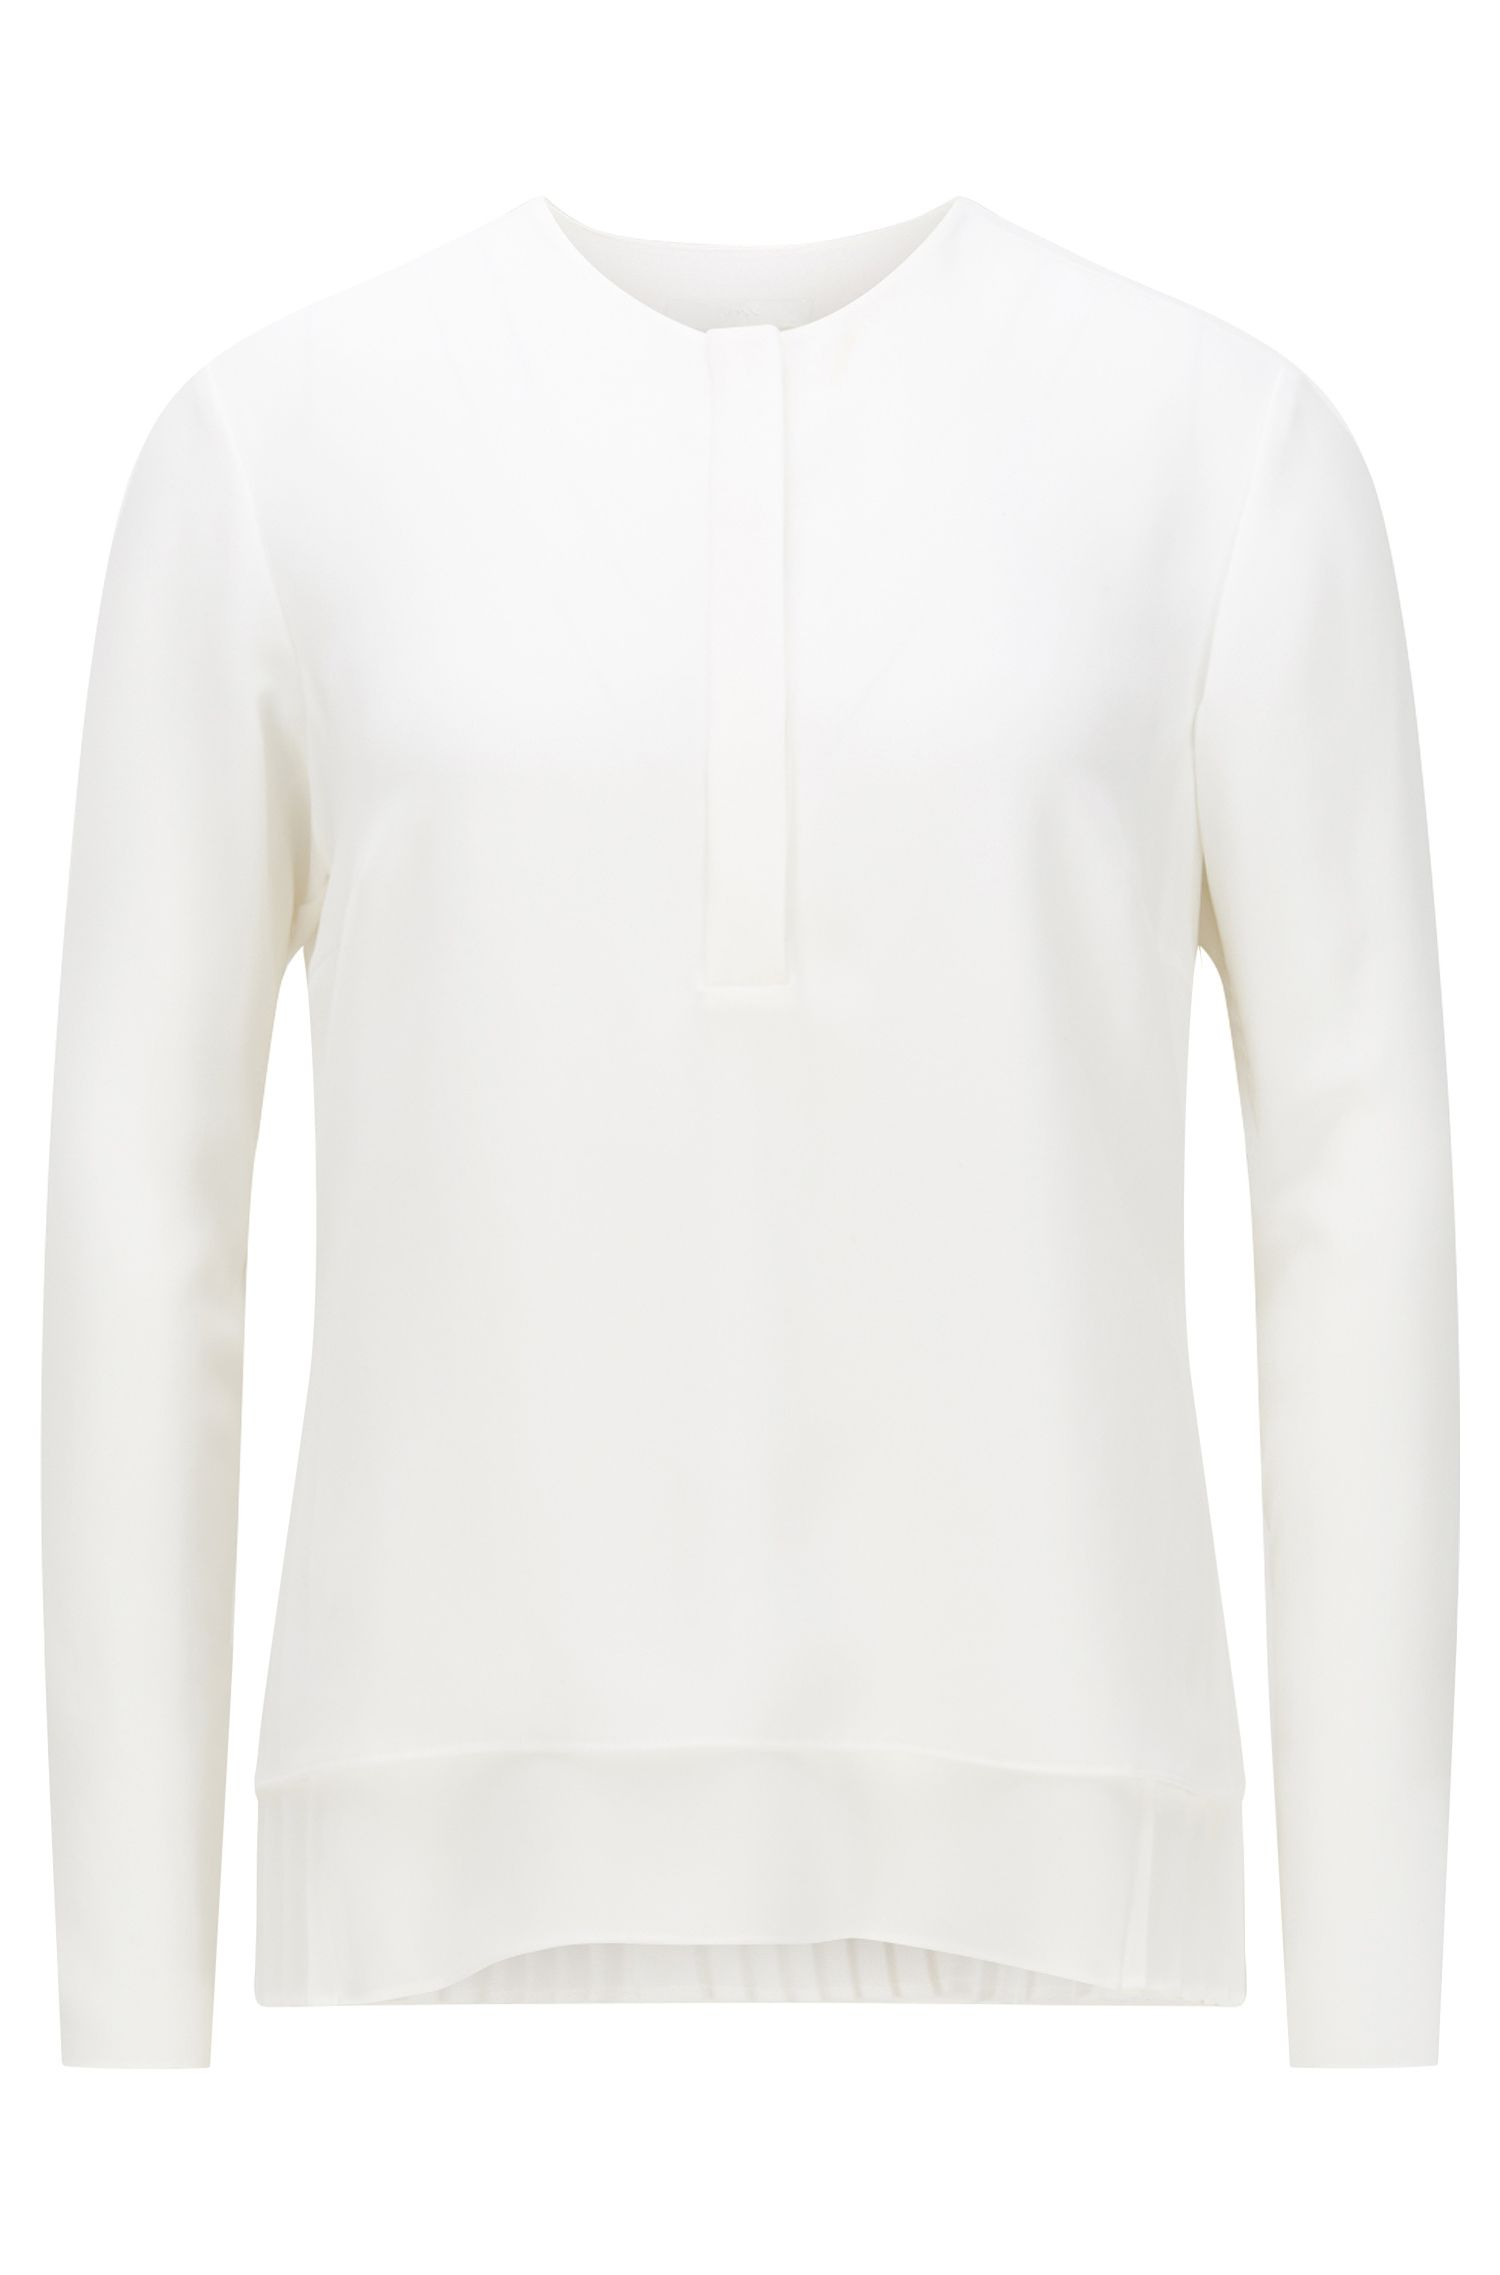 Relaxed-fit blouse in een microtwill met plissé onderlaag